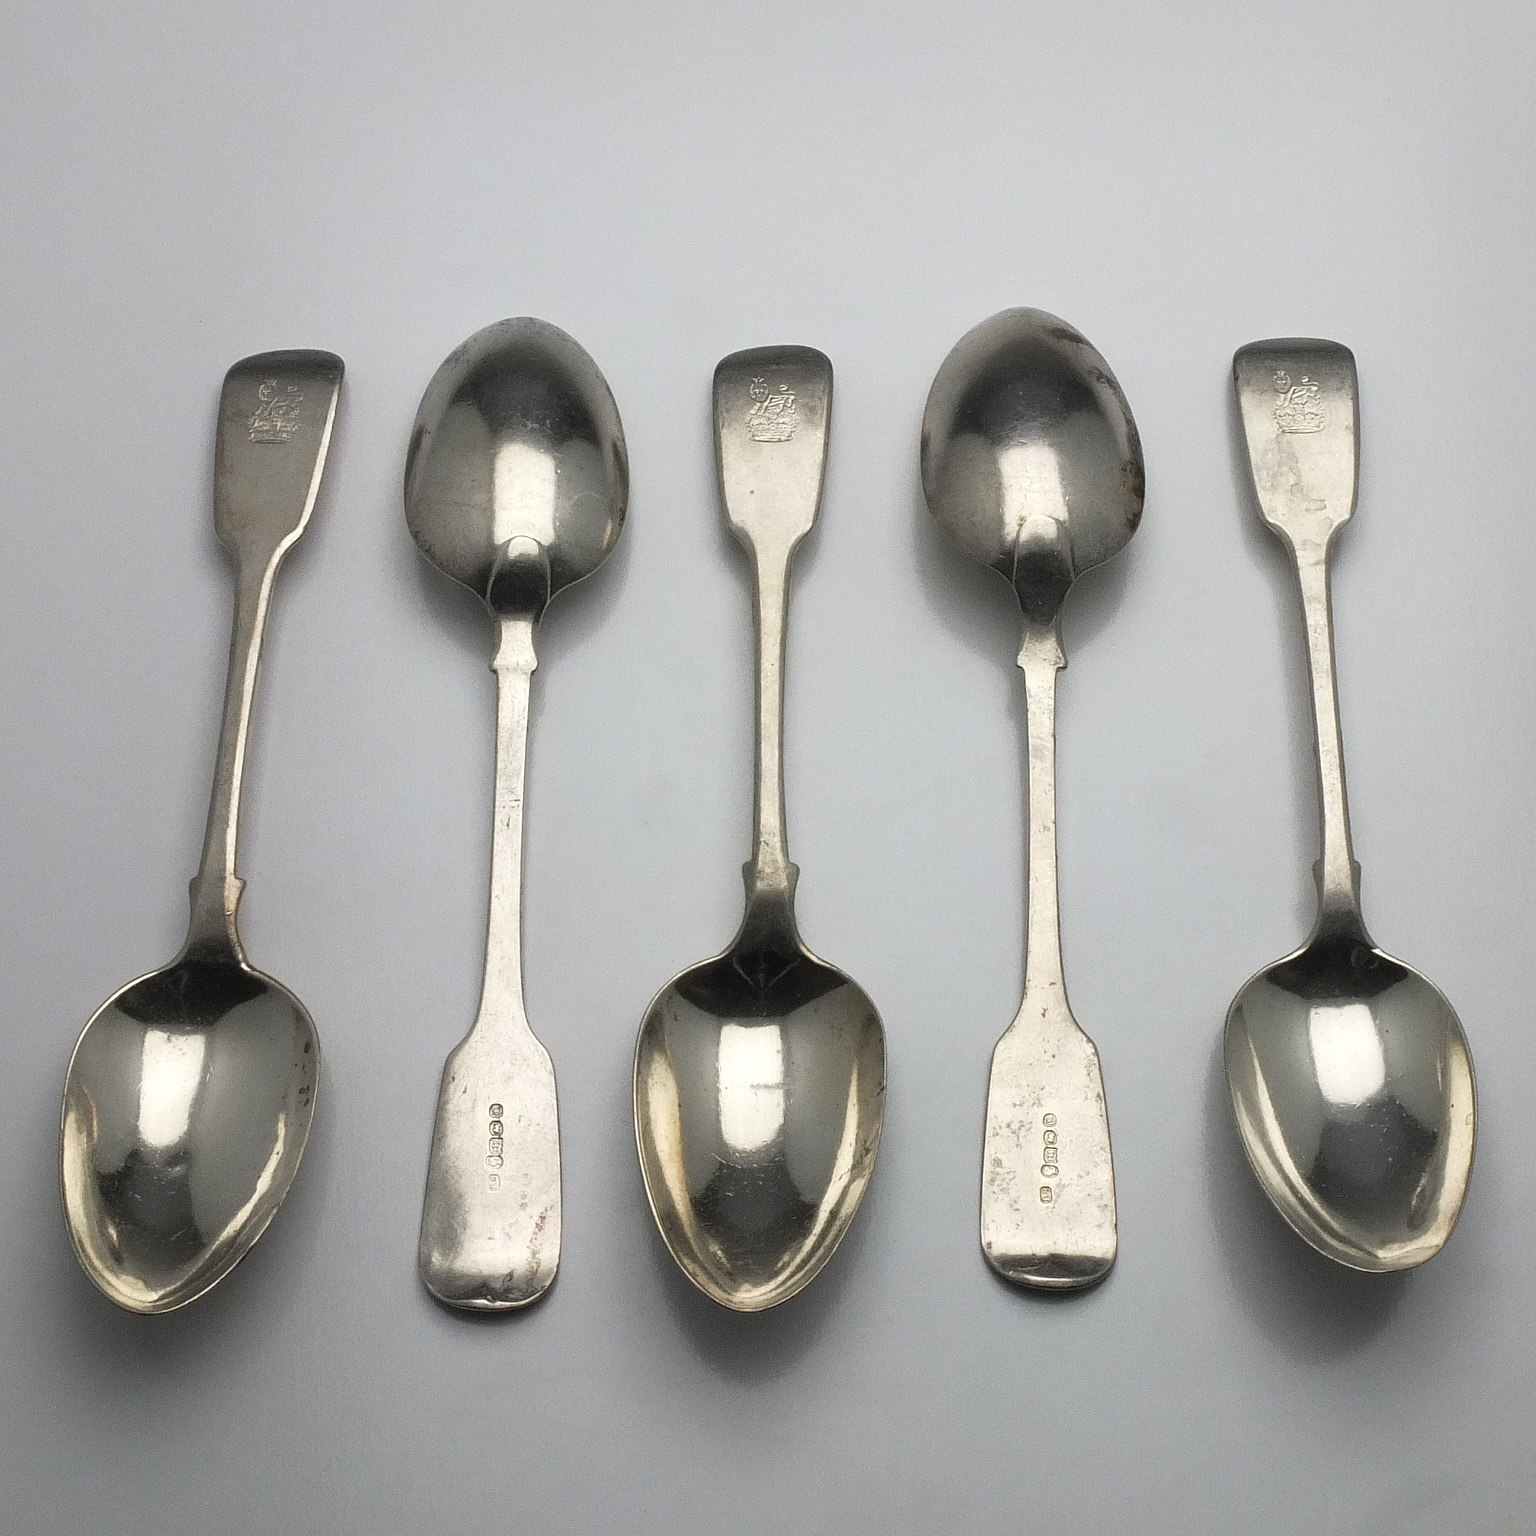 'Five Victorian Crested Sterling Silver Table Spoons Edwin Henry Sweet London 1839'